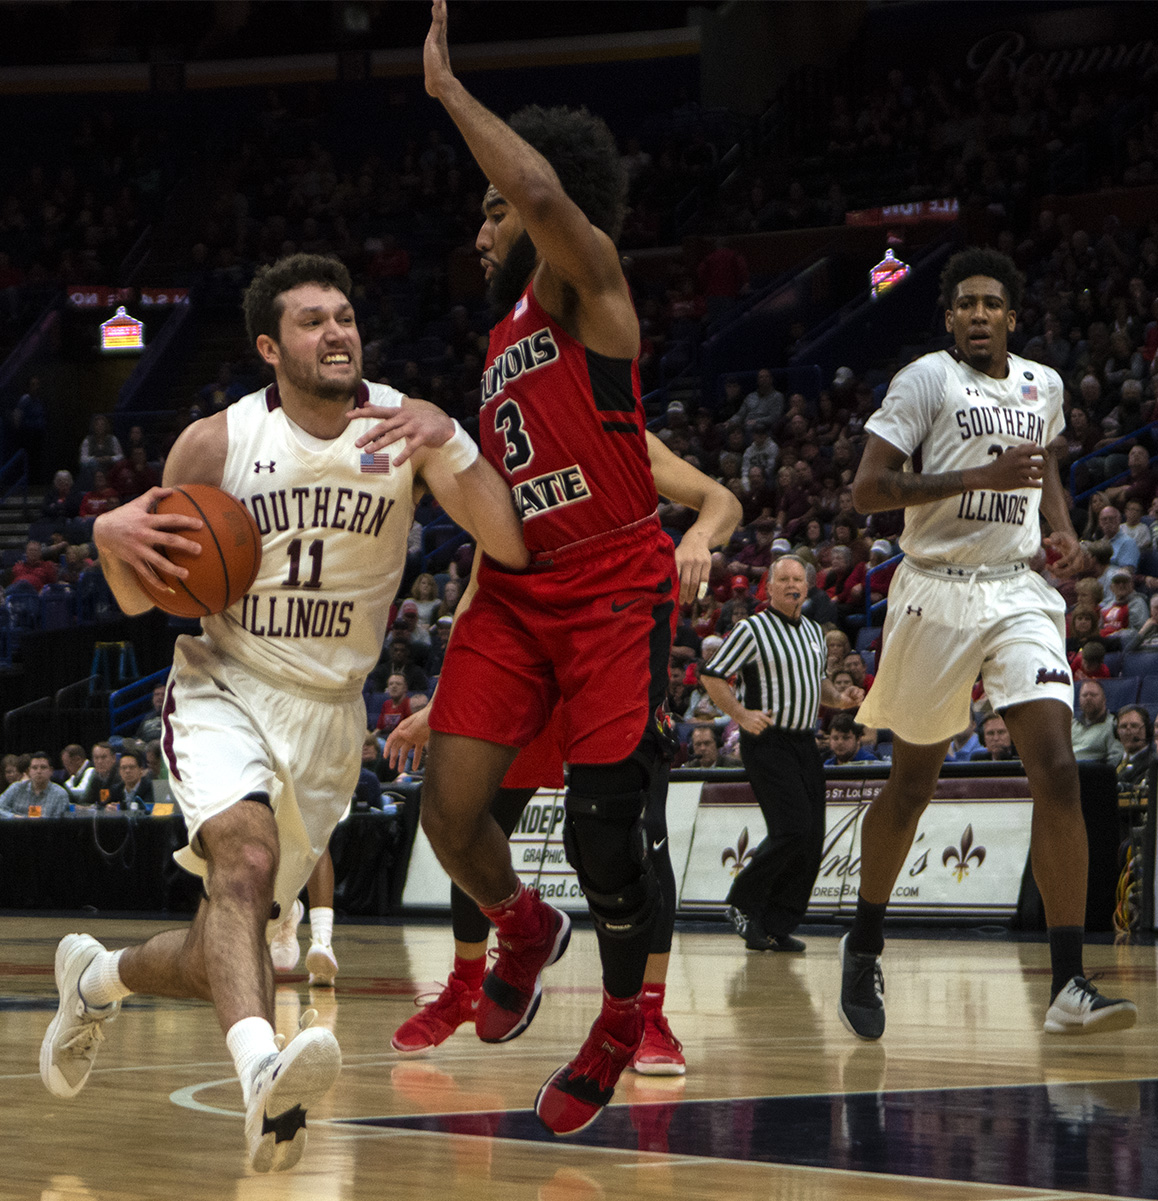 Senior+guard+Tyler+Smithpeters+keeps+the+ball+from+Illinois+State+junior+guard+Keyshawn+Evans+Saturday+March+3%2C+2018+during+the+Salukis%E2%80%99+76-68+loss+against+the+Illinois+State+Redbirds+at+the+Missouri+Valley+Conference+%22Arch+Madness%22+tournament+in+St.+Louis.++%28Reagan+Gavin+%7C+%40RGavin_DE%29